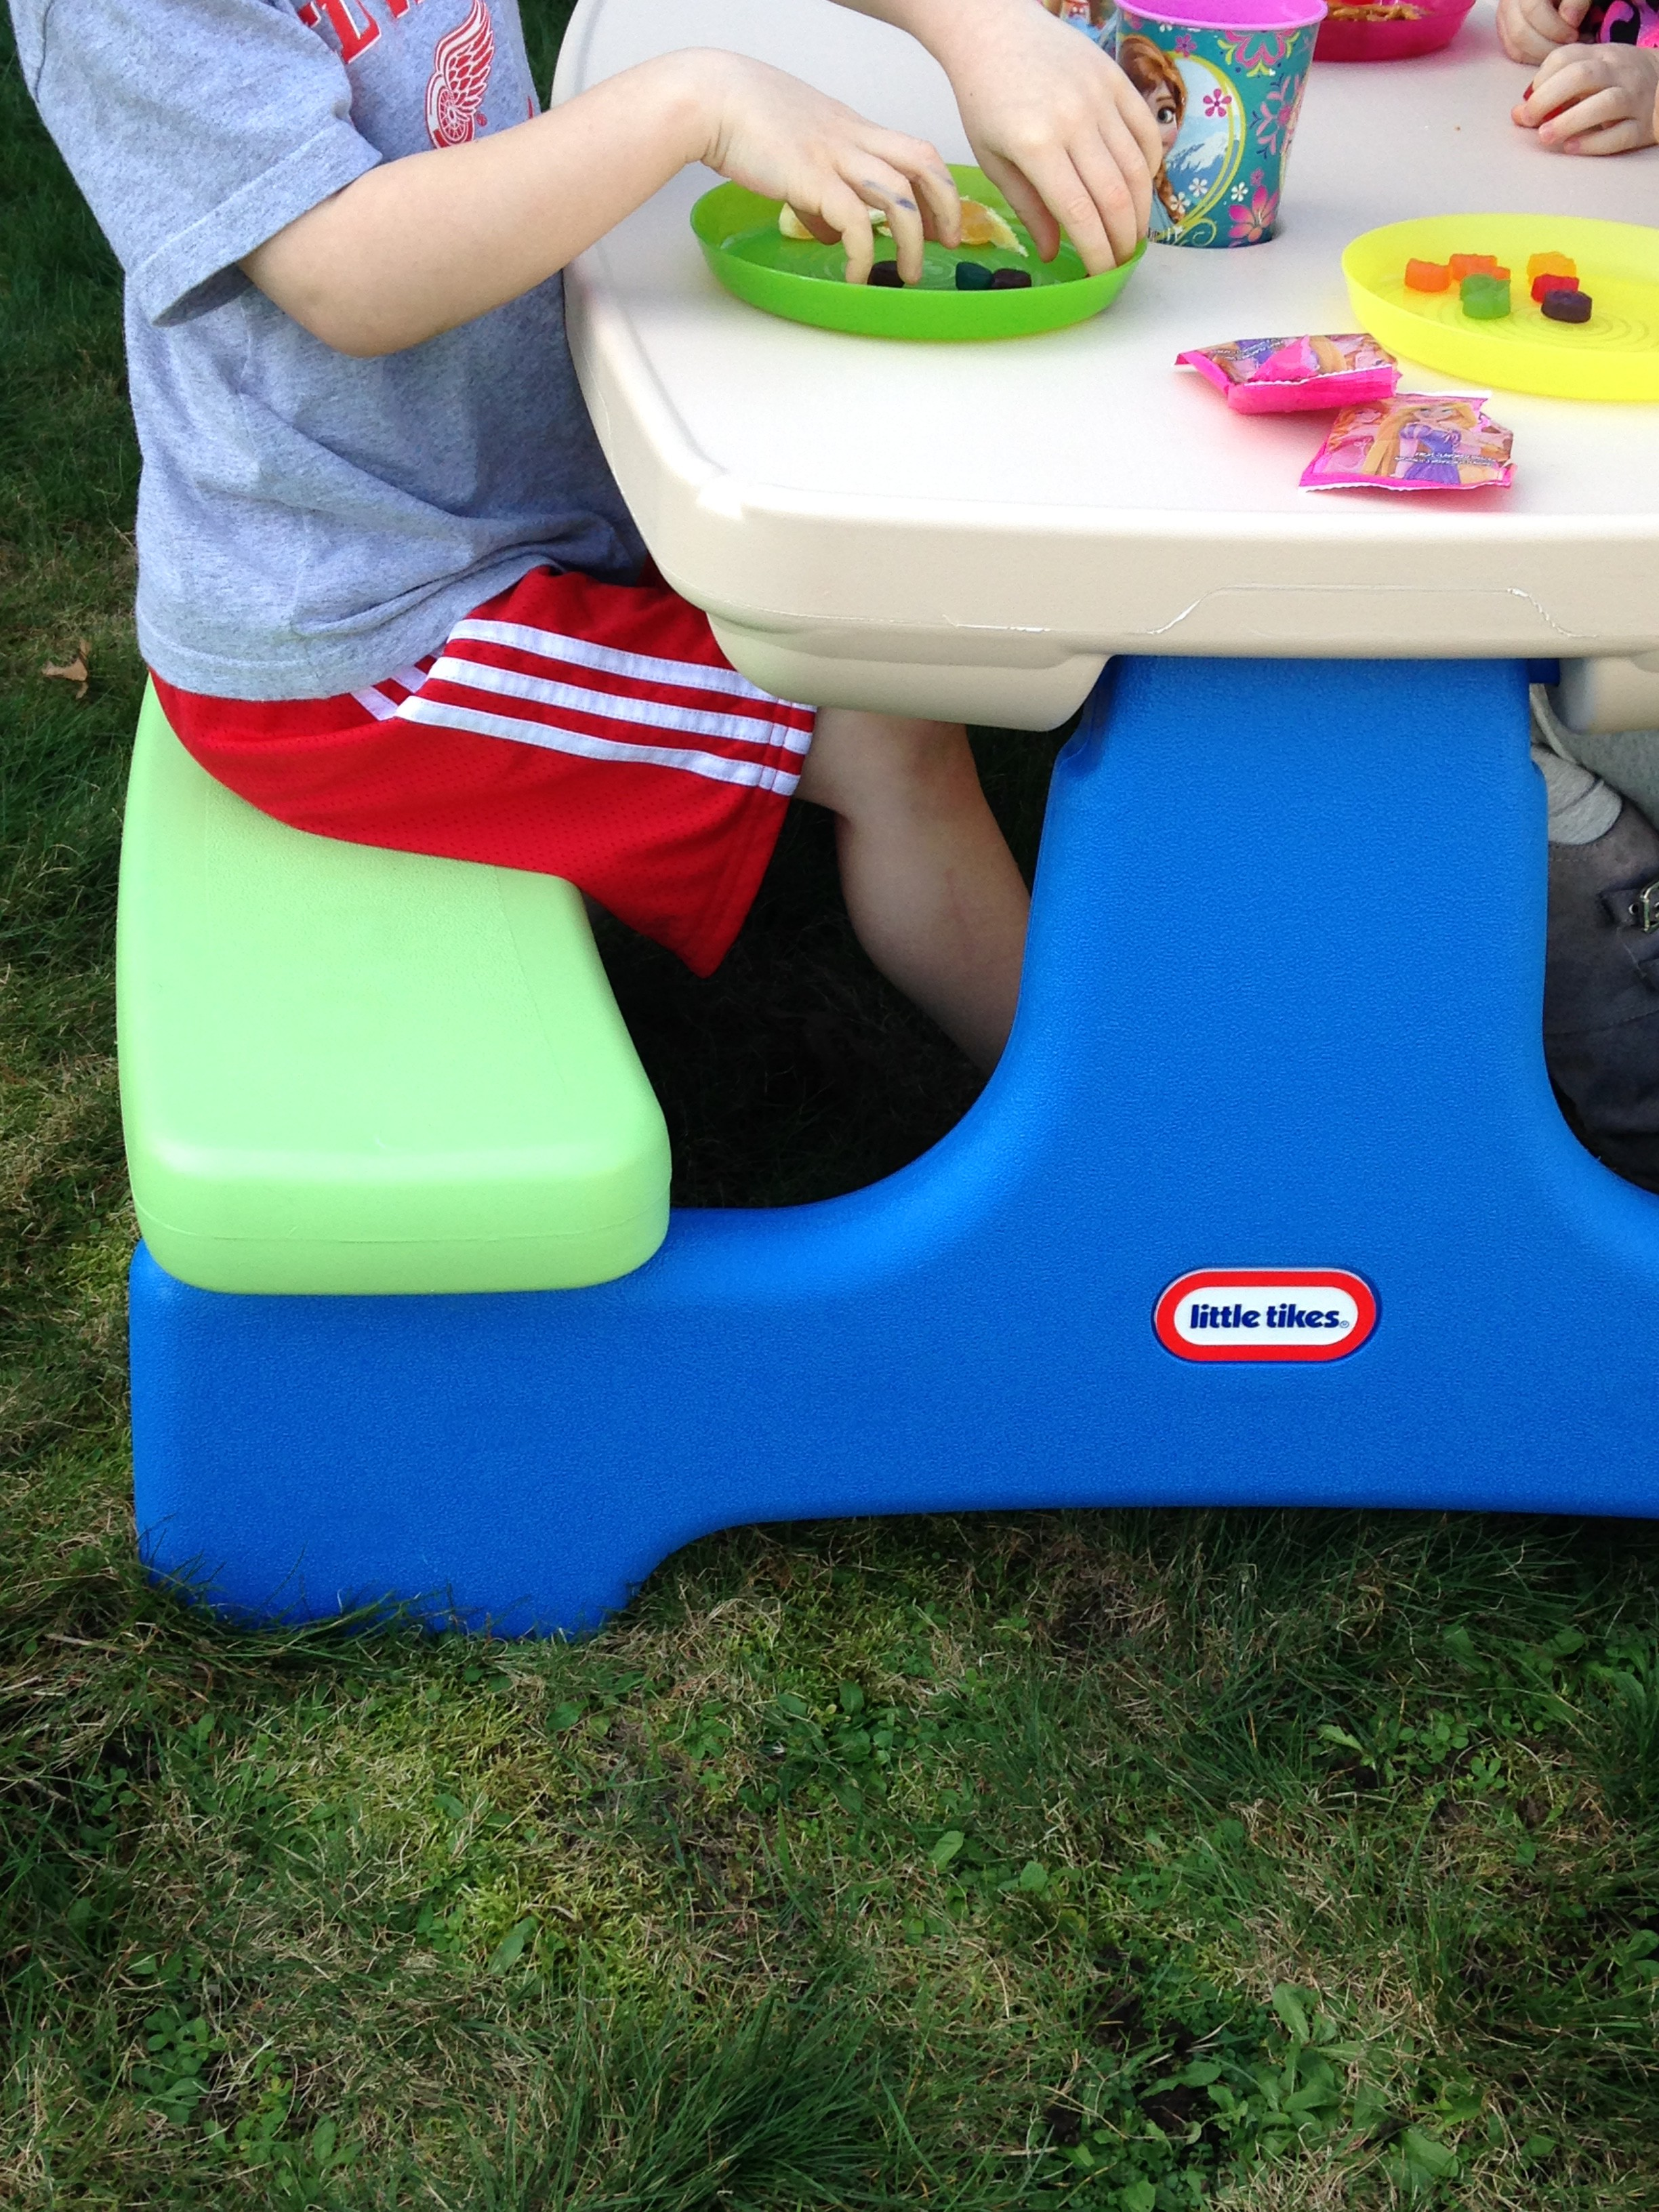 Tikes Easy Store Picnic Table for Indoor & Outdoor Fun